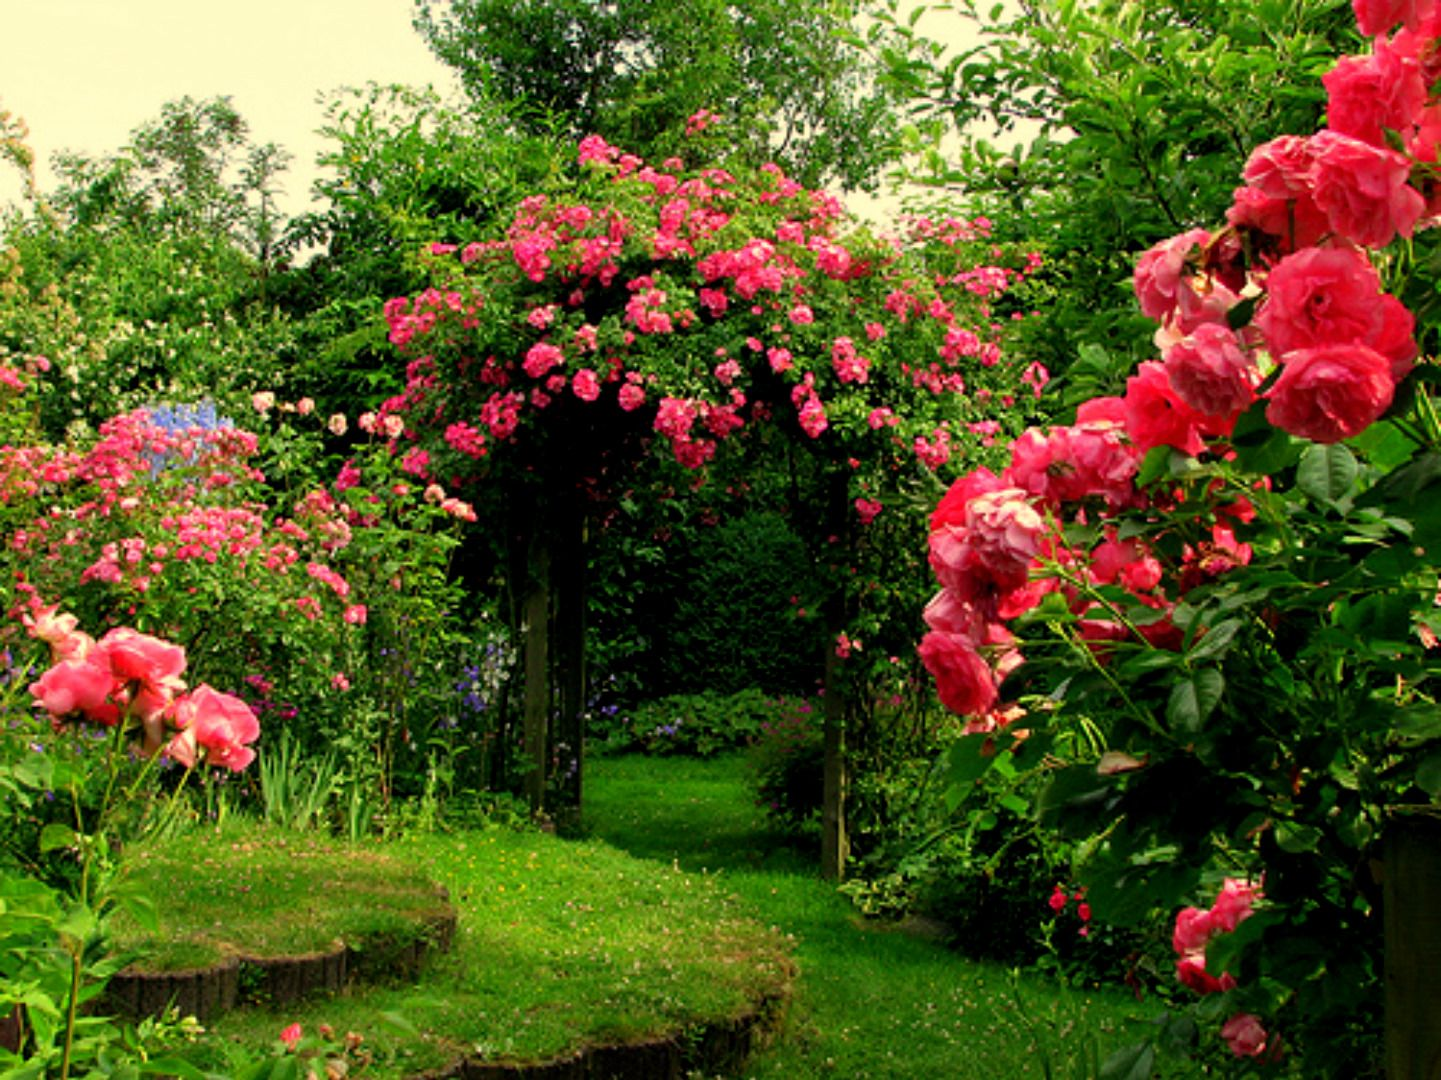 The Rose Garden Is A Beautiful With Number Of Species Multihued Roses Providing Visual Treat For Visitors Description From